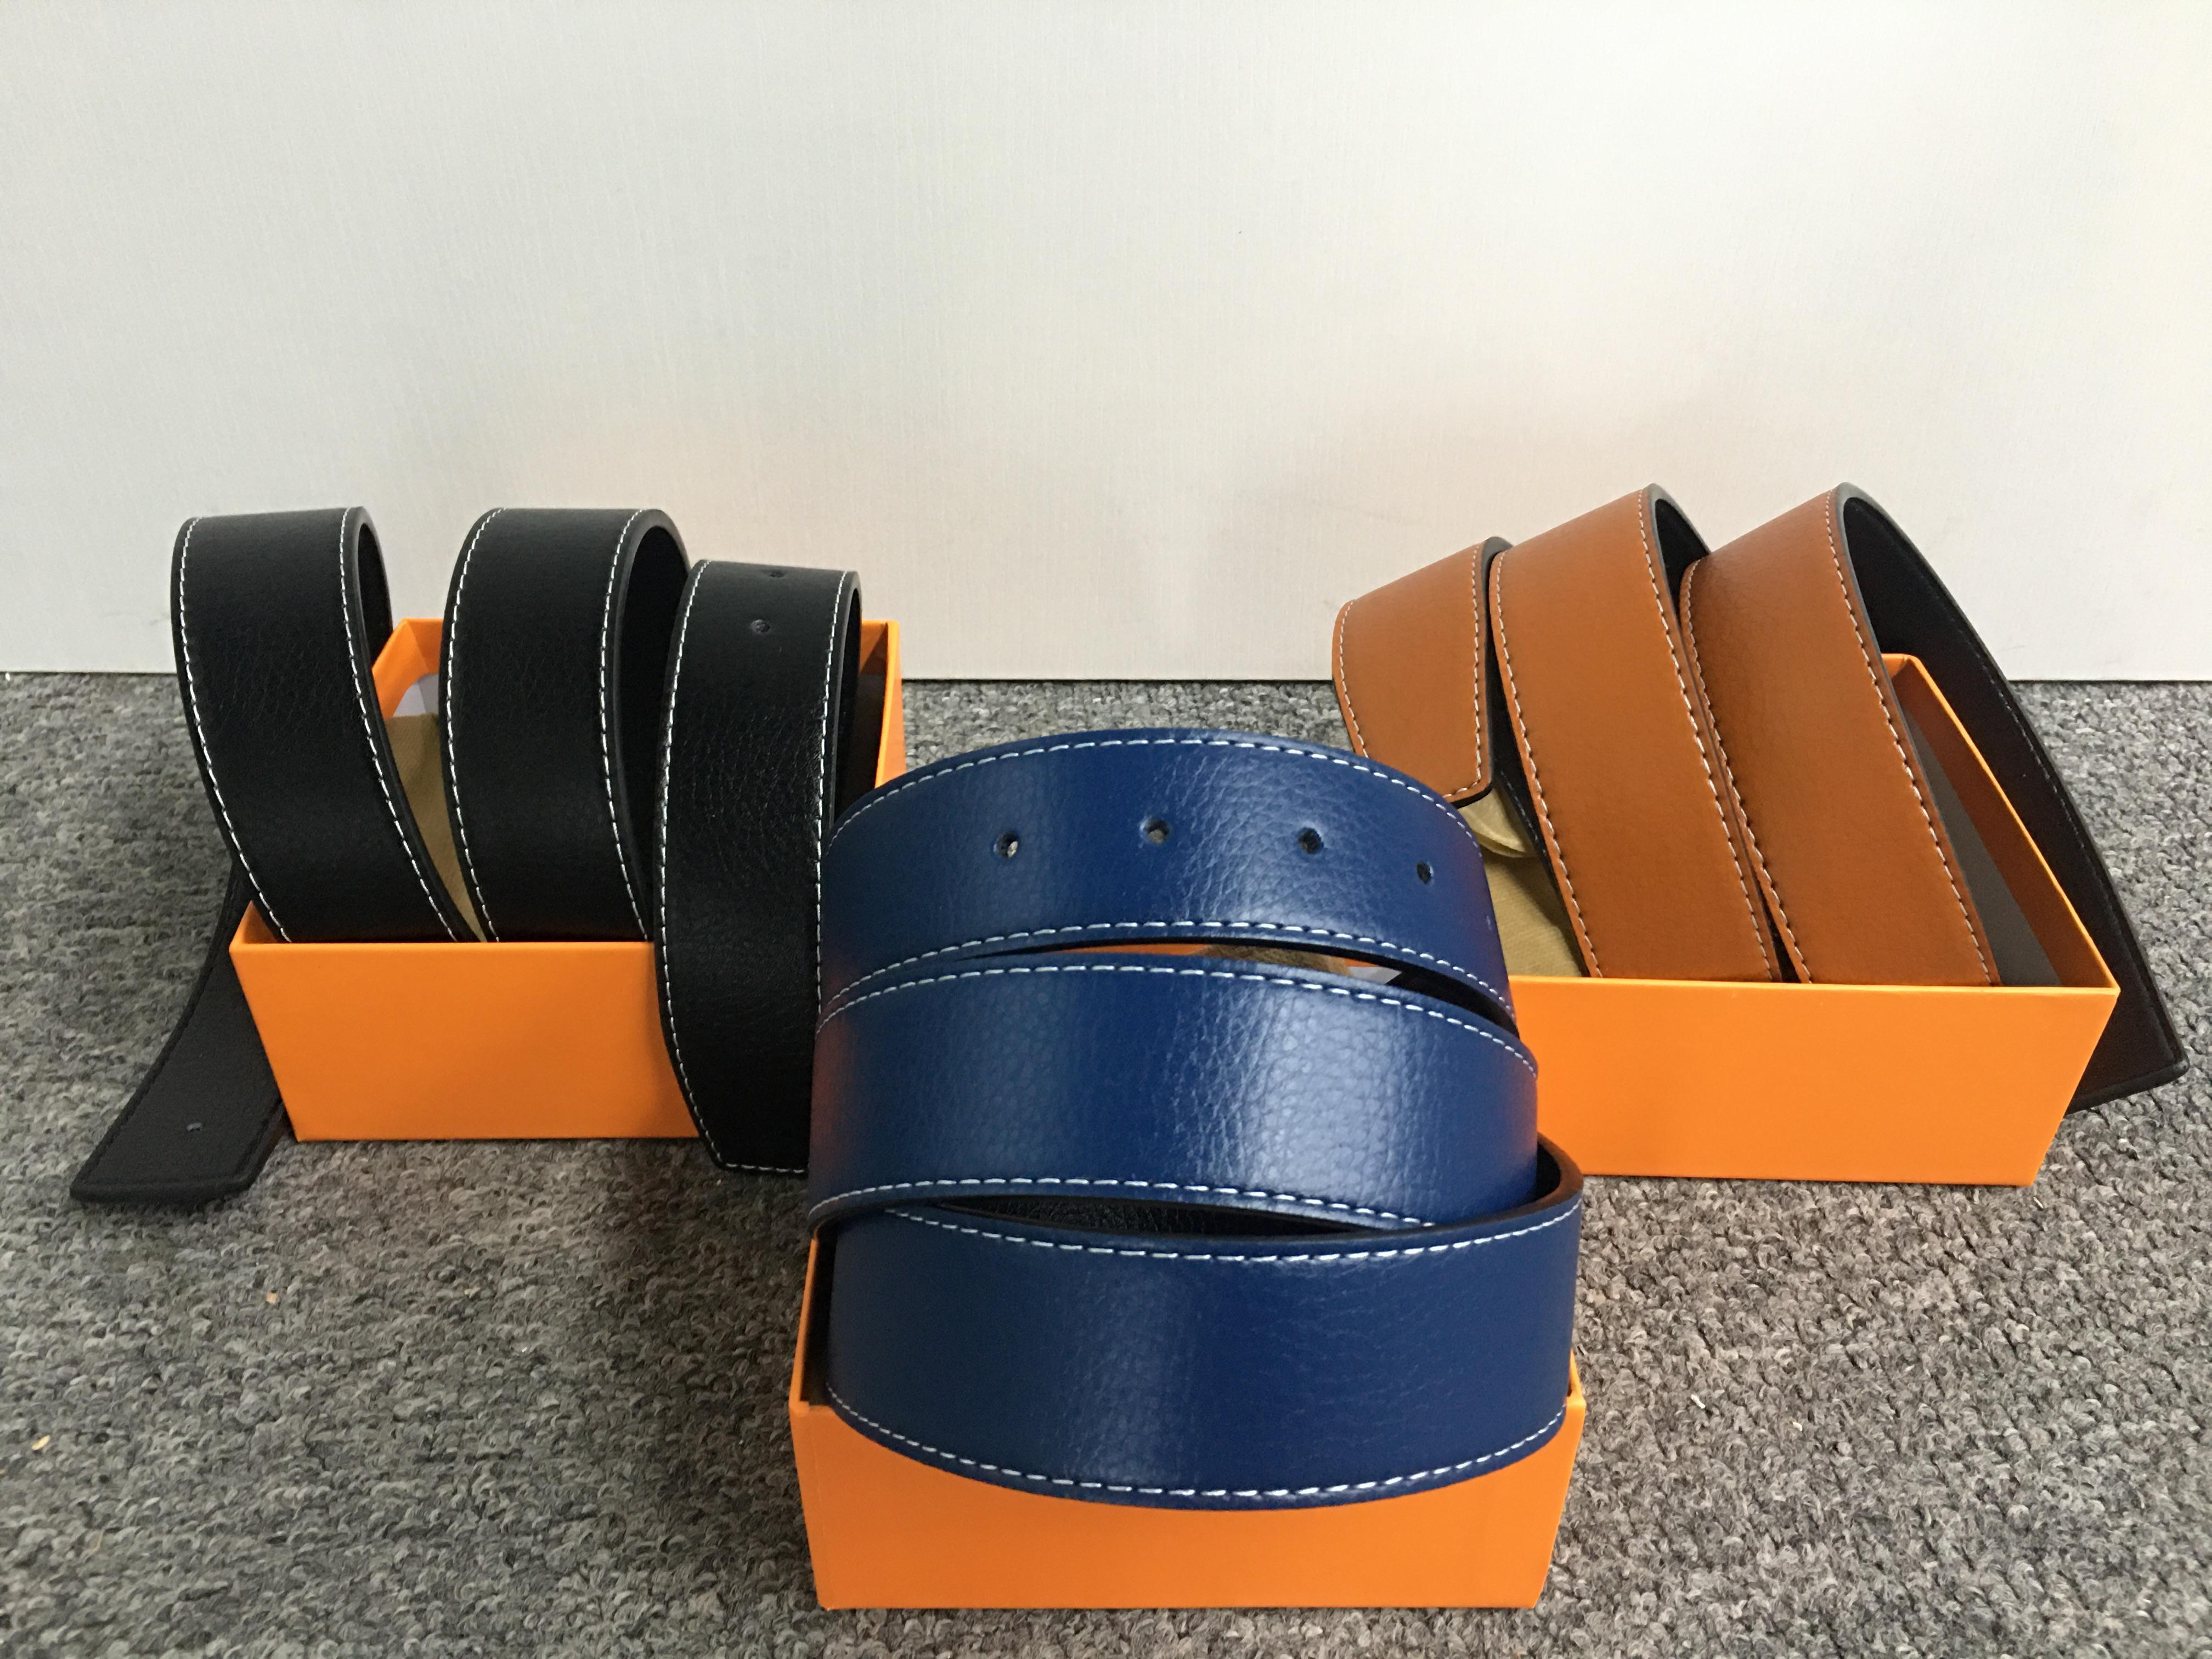 Luxury Designer Belts Men Women Belts of Mens and Women Belt with Fashion Big Buckle Real Leather Top High Quality